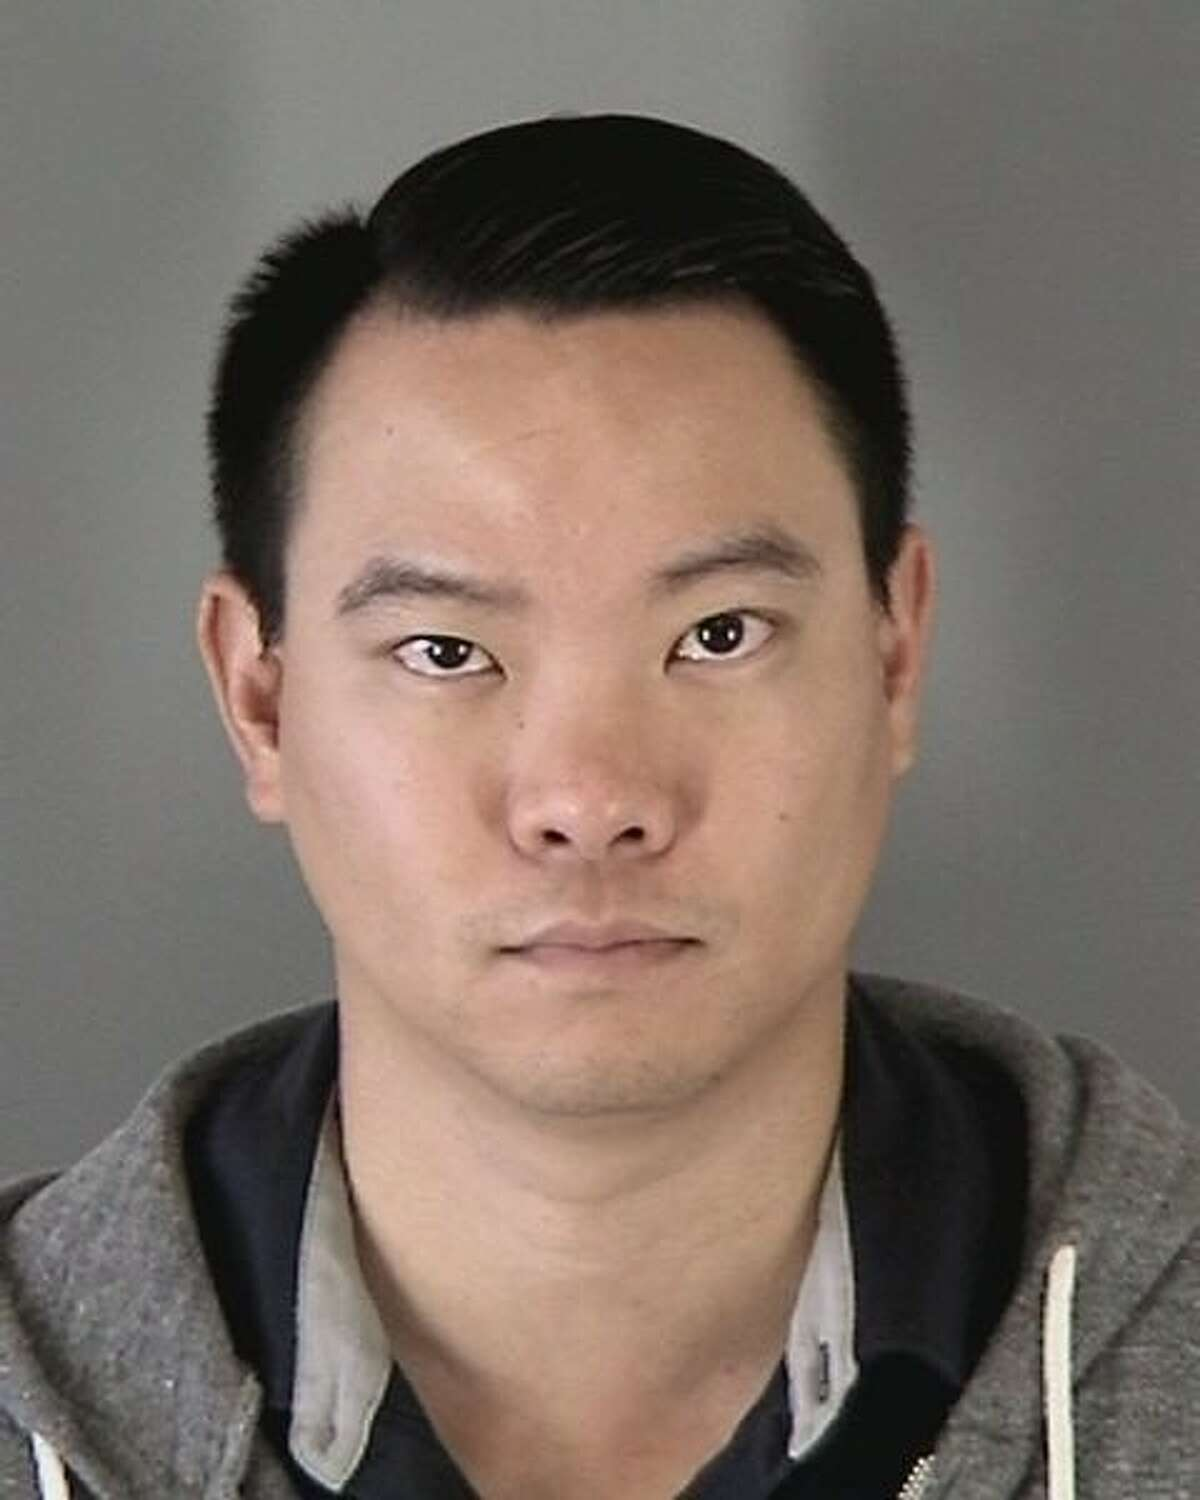 Officer Jason Lai was charged with two misdemeanor counts of unlawful possession of criminal history information and four misdemeanor counts of misuse of confidential Department of Motor Vehicles information, police said.